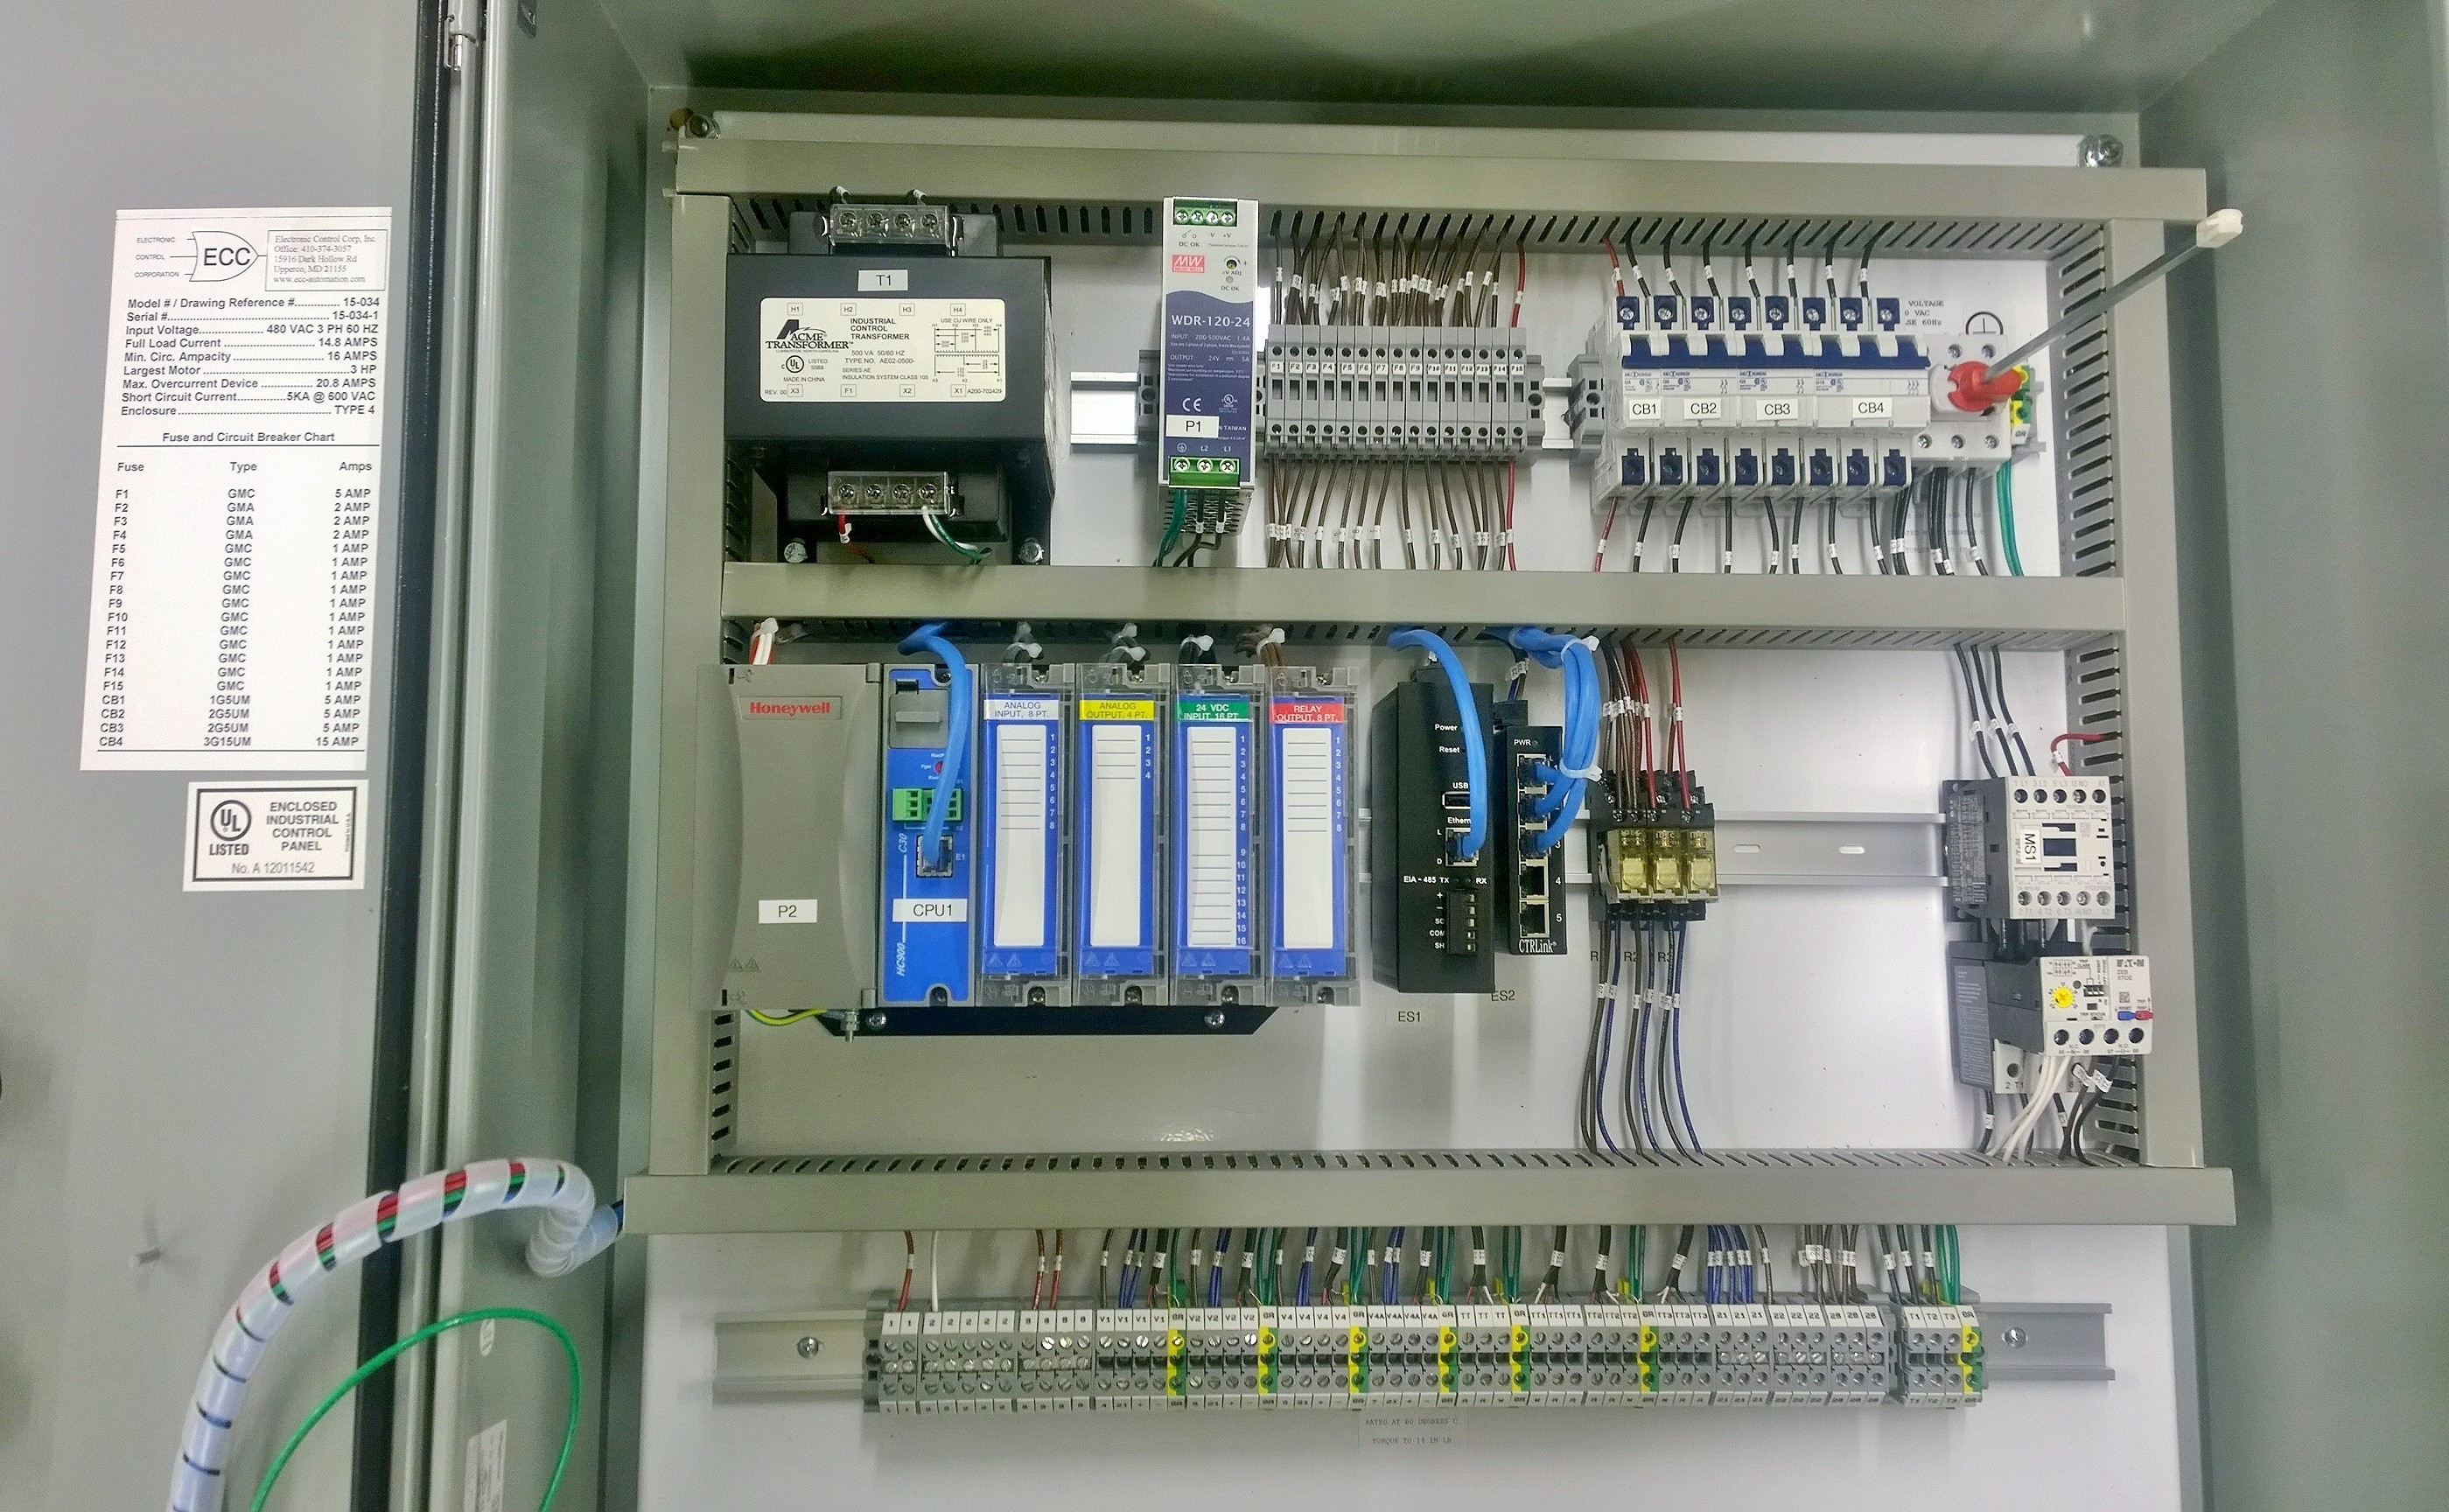 Honeywell Hc900 Wiring Diagram 30 Images Rm7800 Wp 20150727 10 49 26 Pro Ecc Completes Powered Heat Exchanger Electronic At 11 02